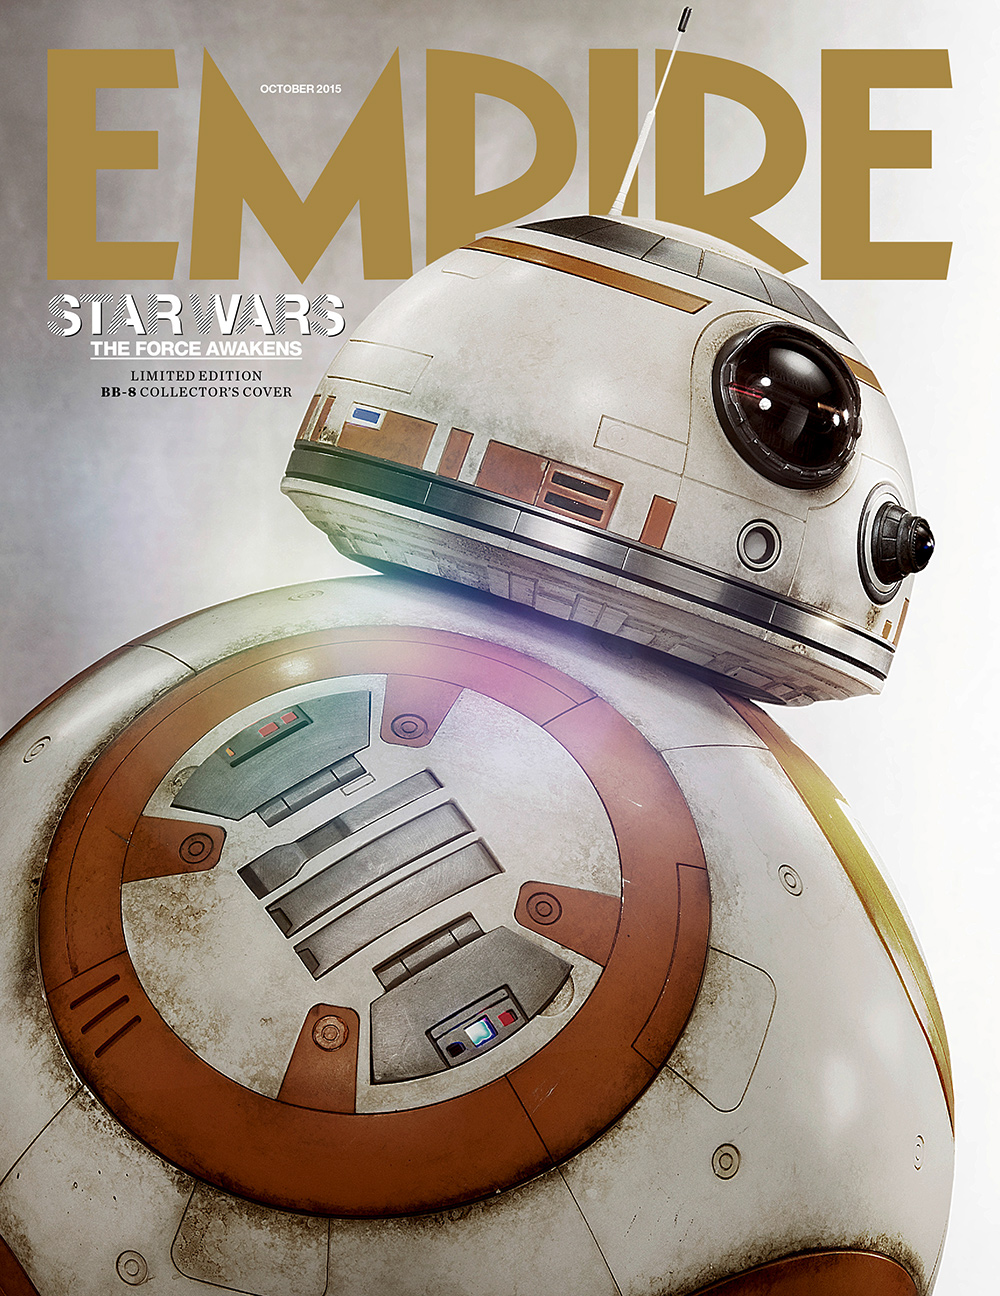 2-bts-photos-from-star-wars-the-force-awakens-and-bb-8-empire-cover